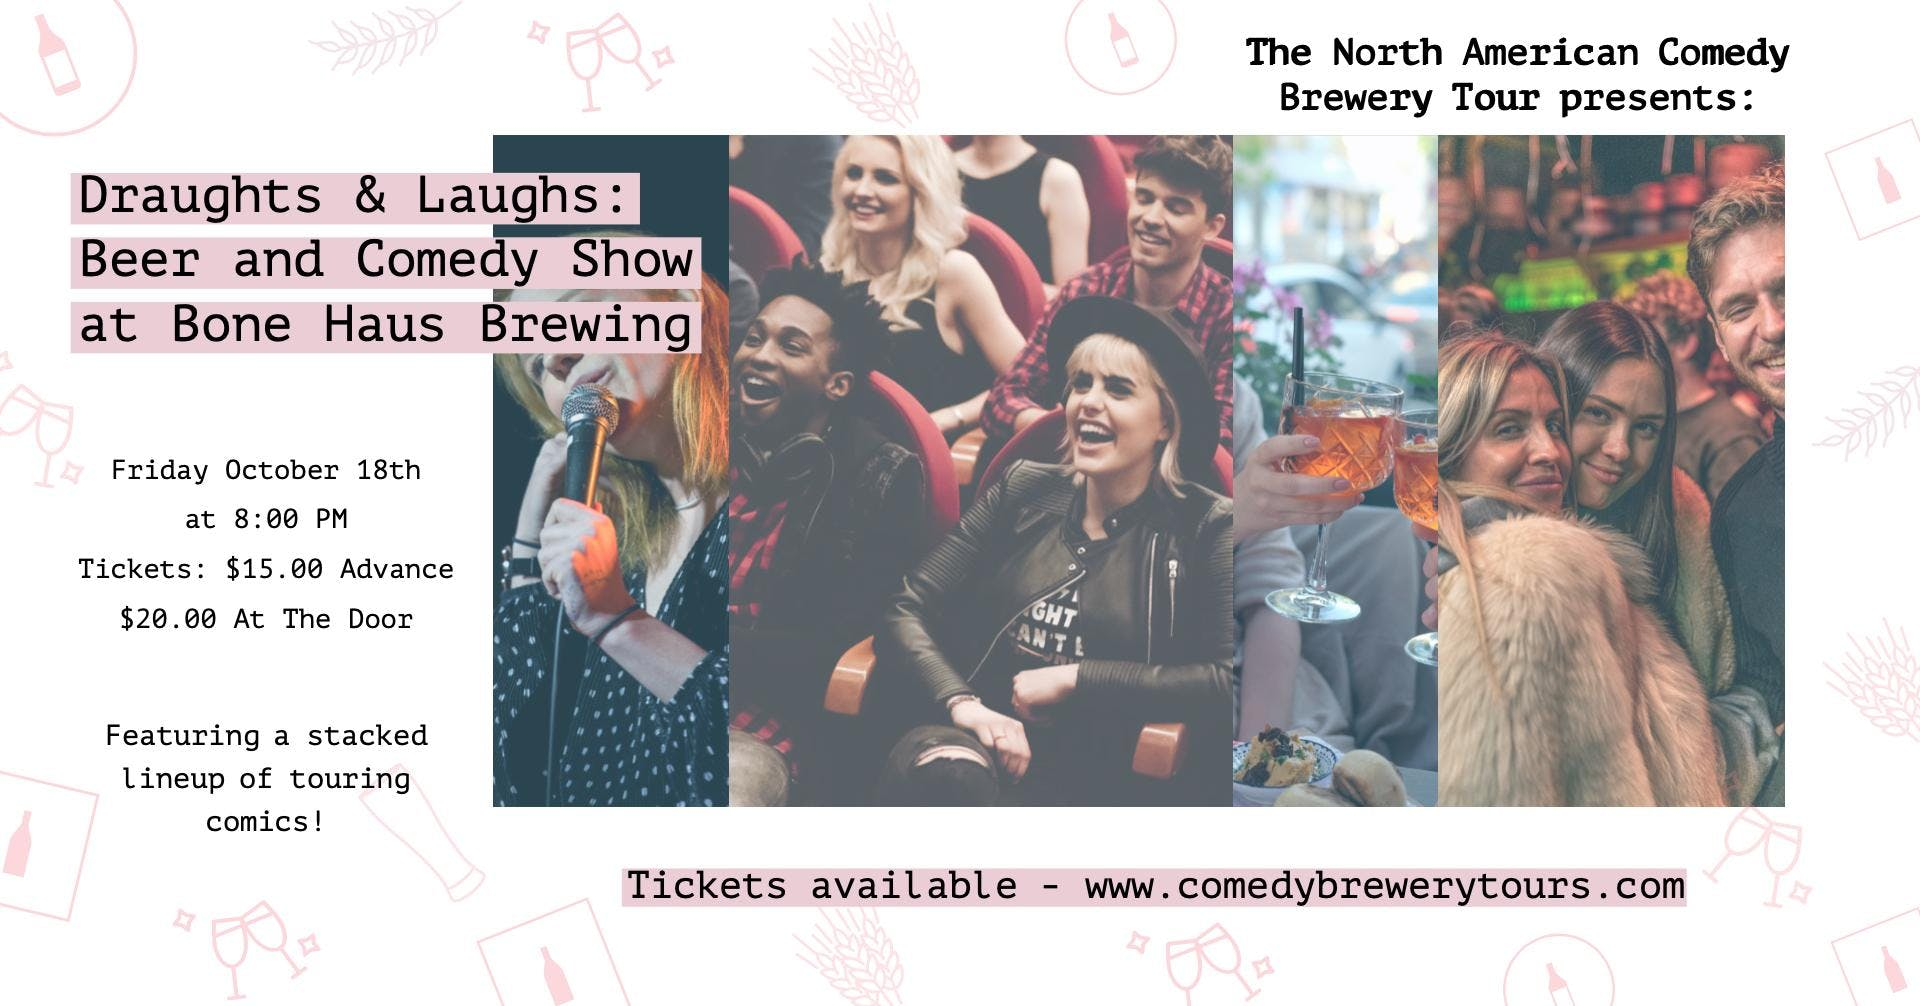 Draughts & Laughs: Beer and Comedy Show at Bone Haus Brewing